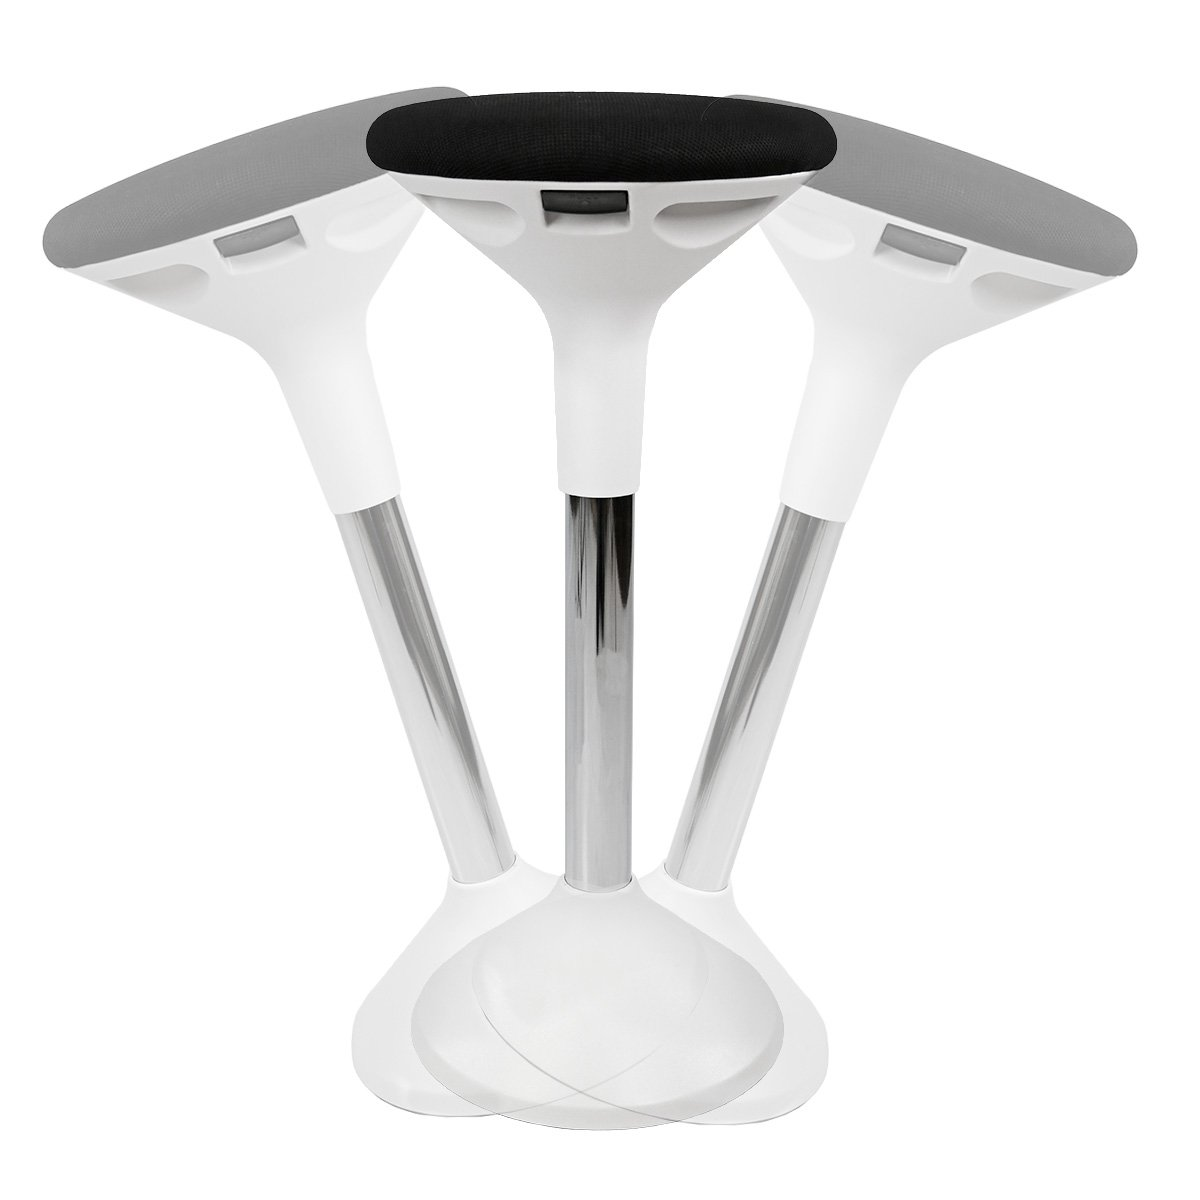 AdvanceUp Active Sitting Chair, Height Adjustable Motion Swivel Wooble Stool for Standing Desk, Black & White, Ergonomic Office Chair for Comfort & Back Pain Relief